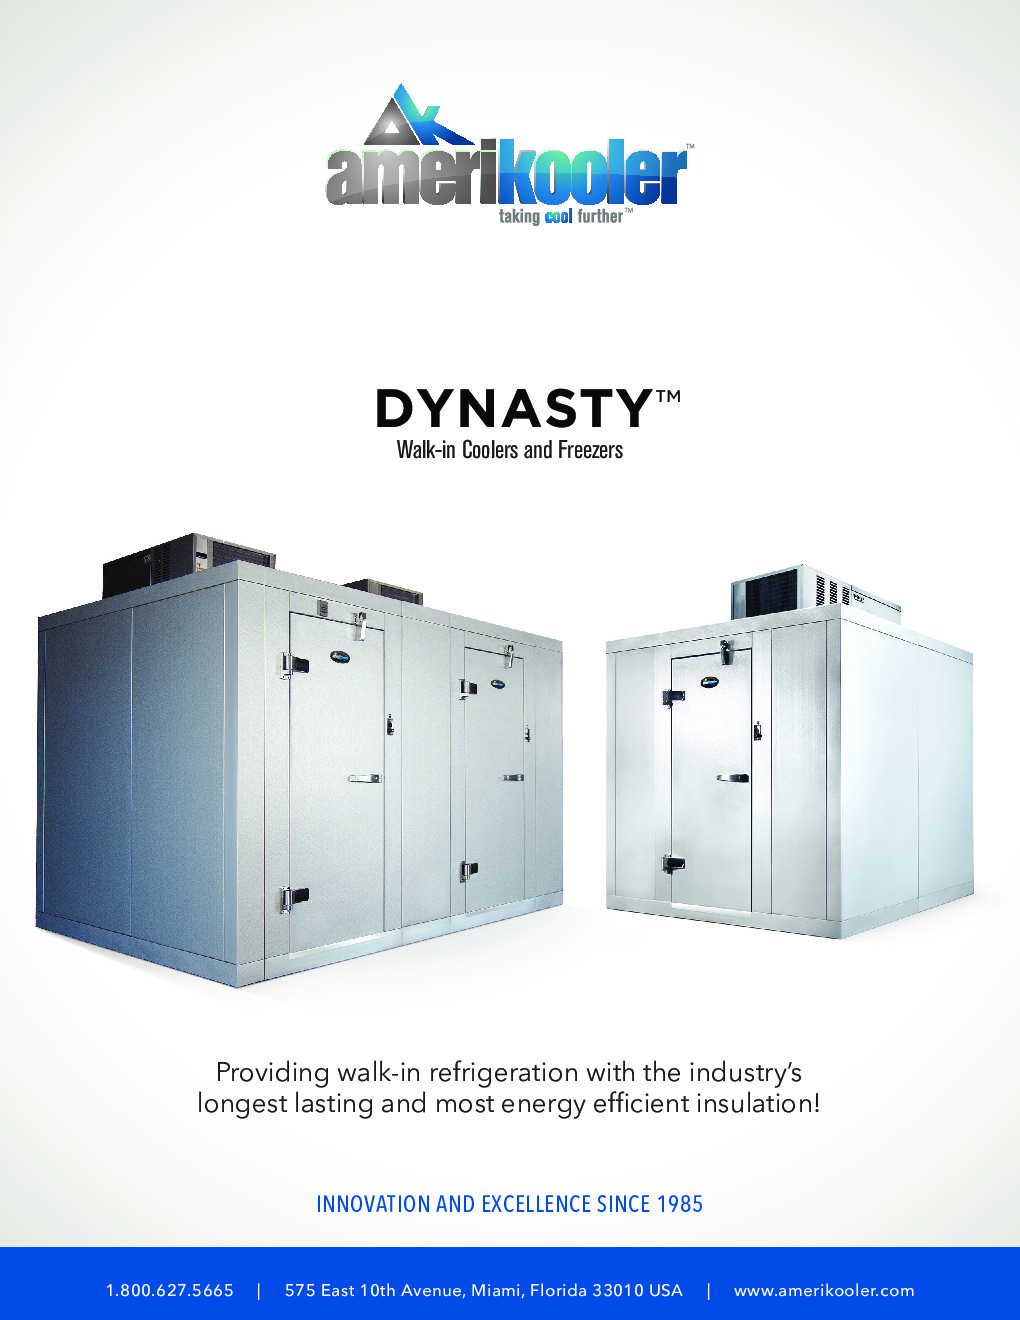 AmeriKooler DW070977N-4/5 Indoor 7' X 9' Walk-In, 5' L Cooler without Floor and 4' L Freezer, Box Only